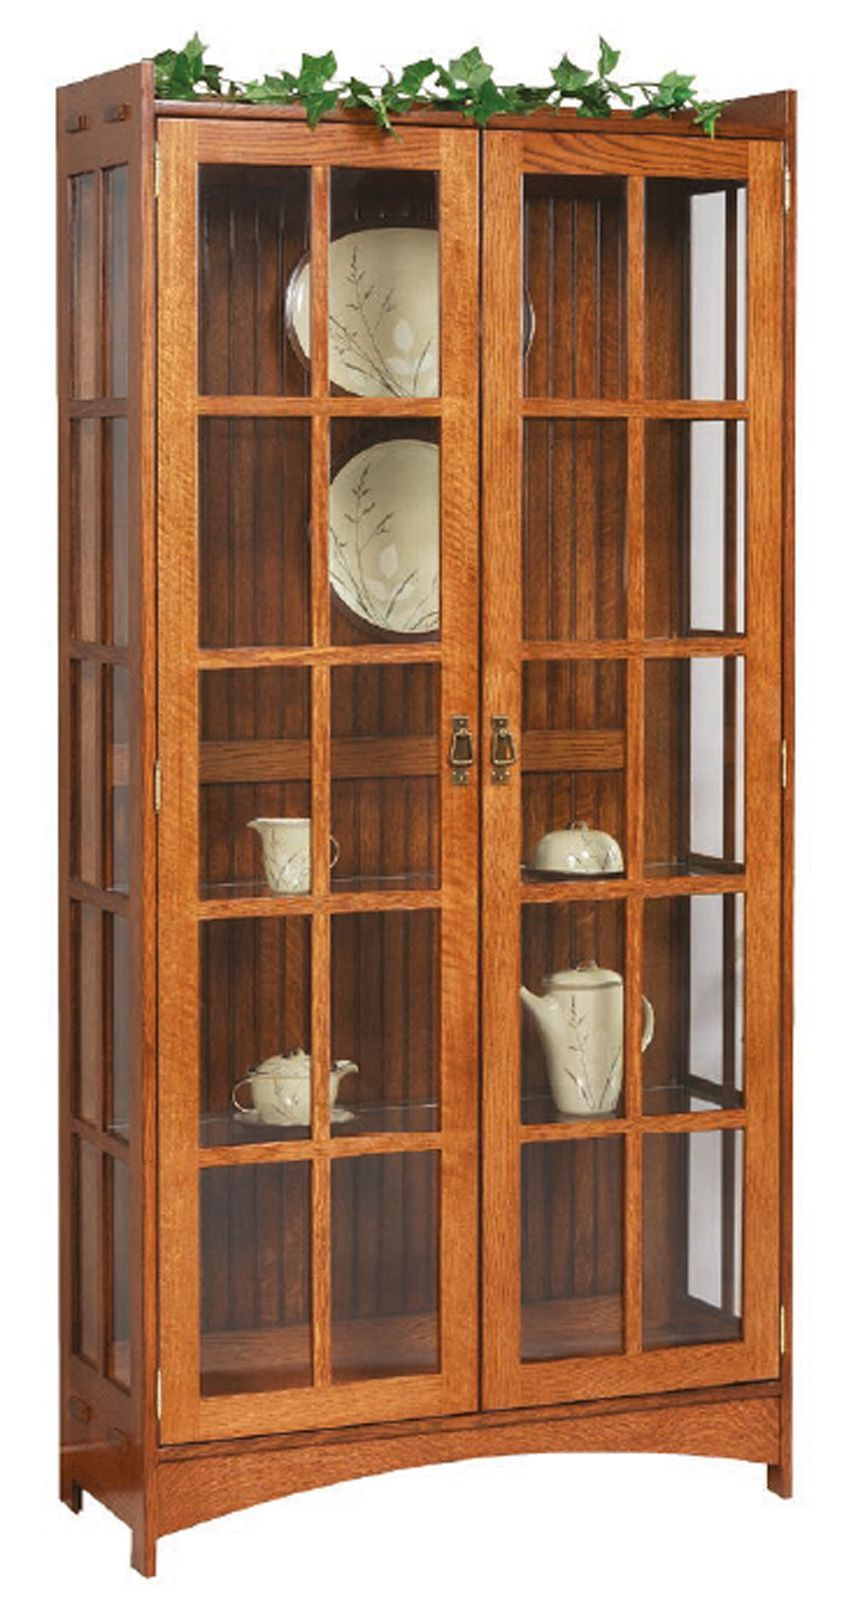 Strong Sturdy Hand Crafted Amish Made Furniture Curio Cabinet Mission Style Furniture China Cabinet Display